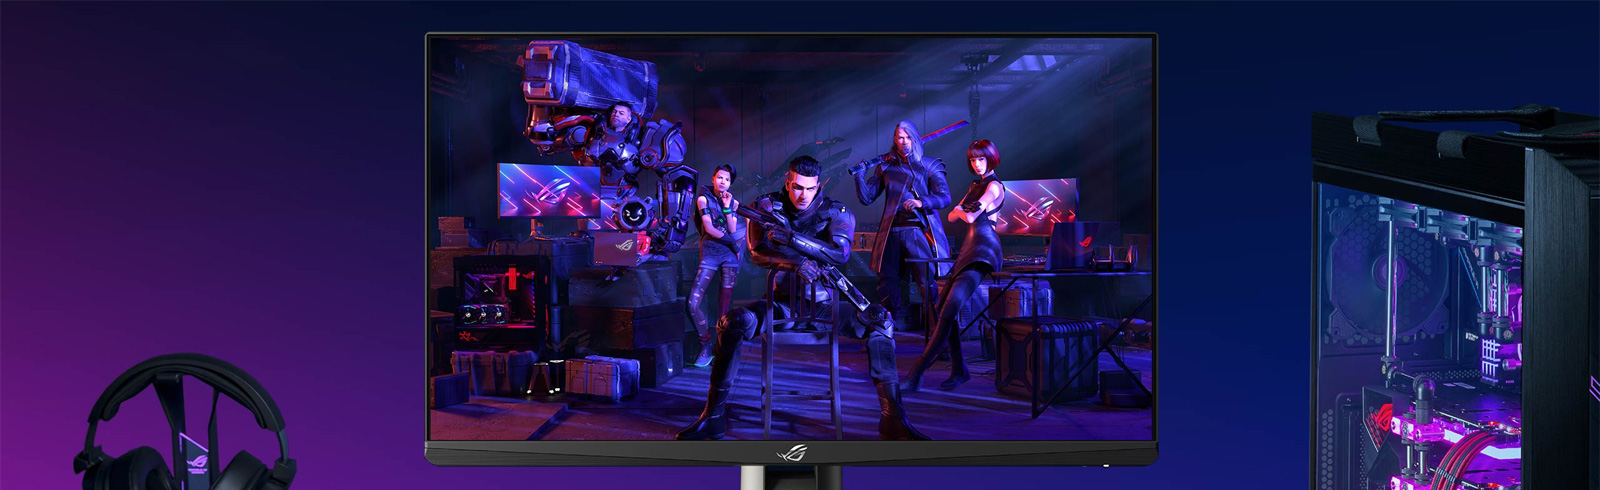 The Asus ROG Swift PG259QNR is the official gaming monitor of the International 10 tournament from DOTA 2